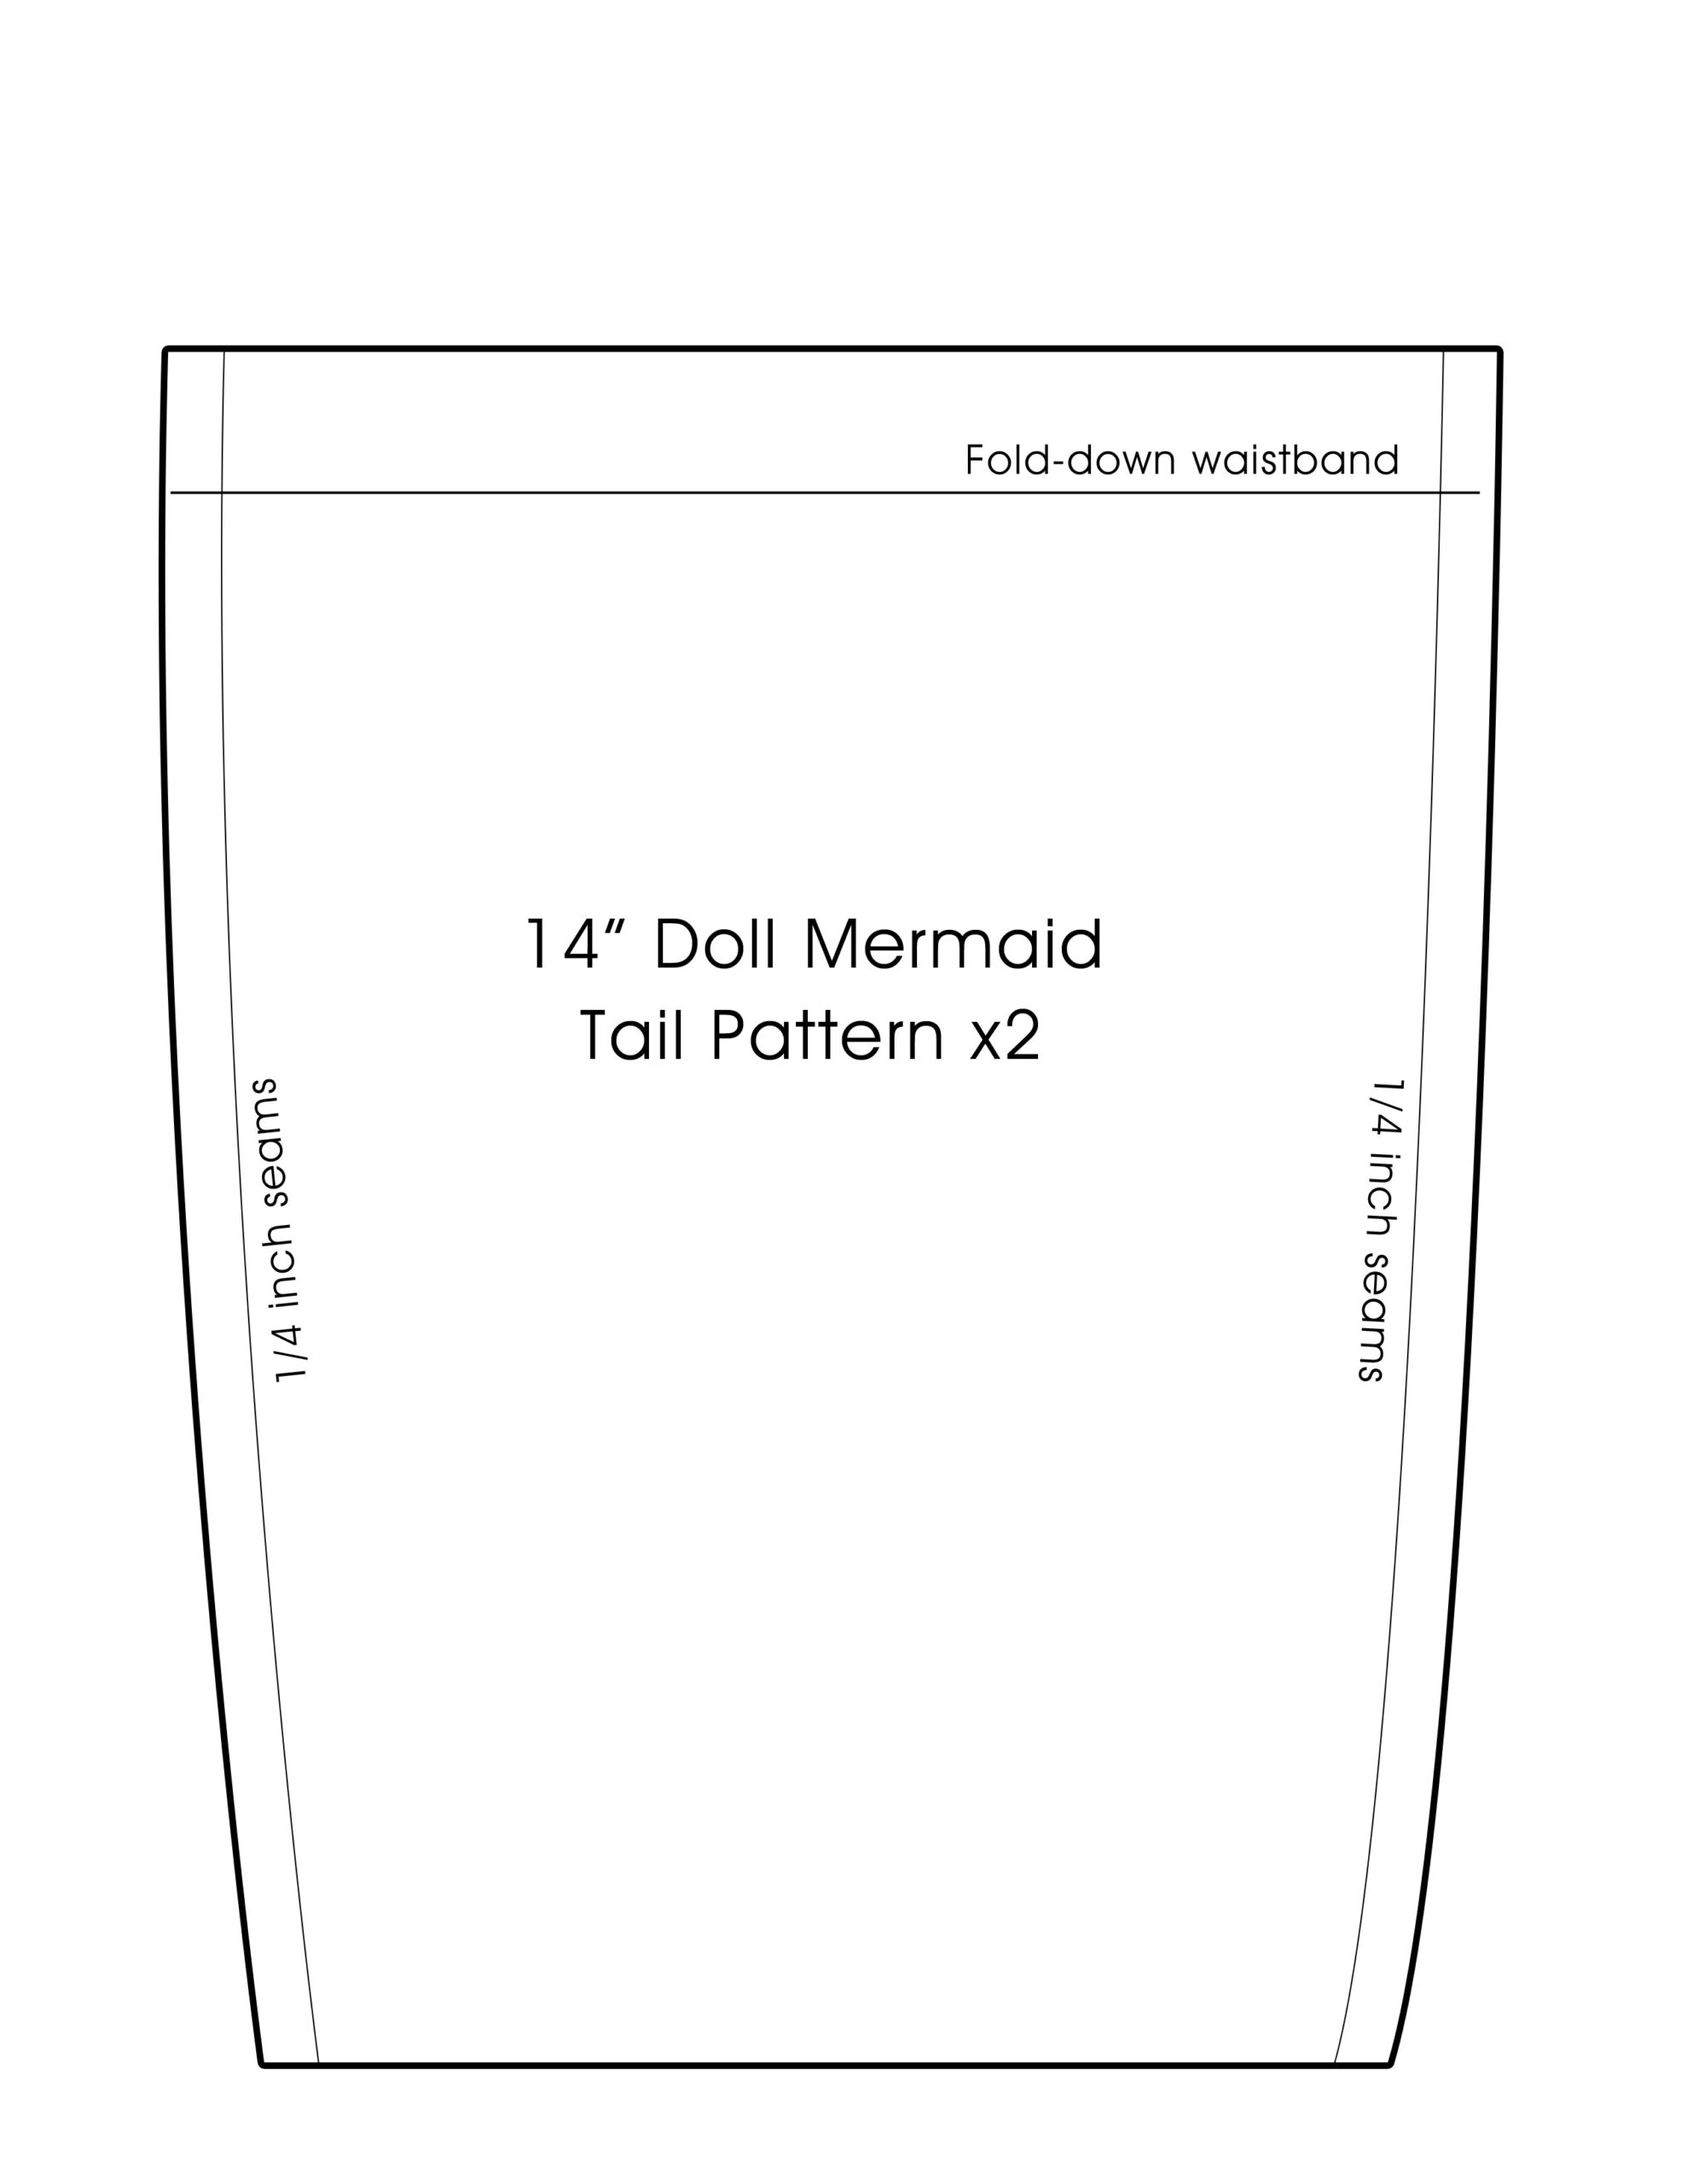 14 inch doll mermaid tail pattern